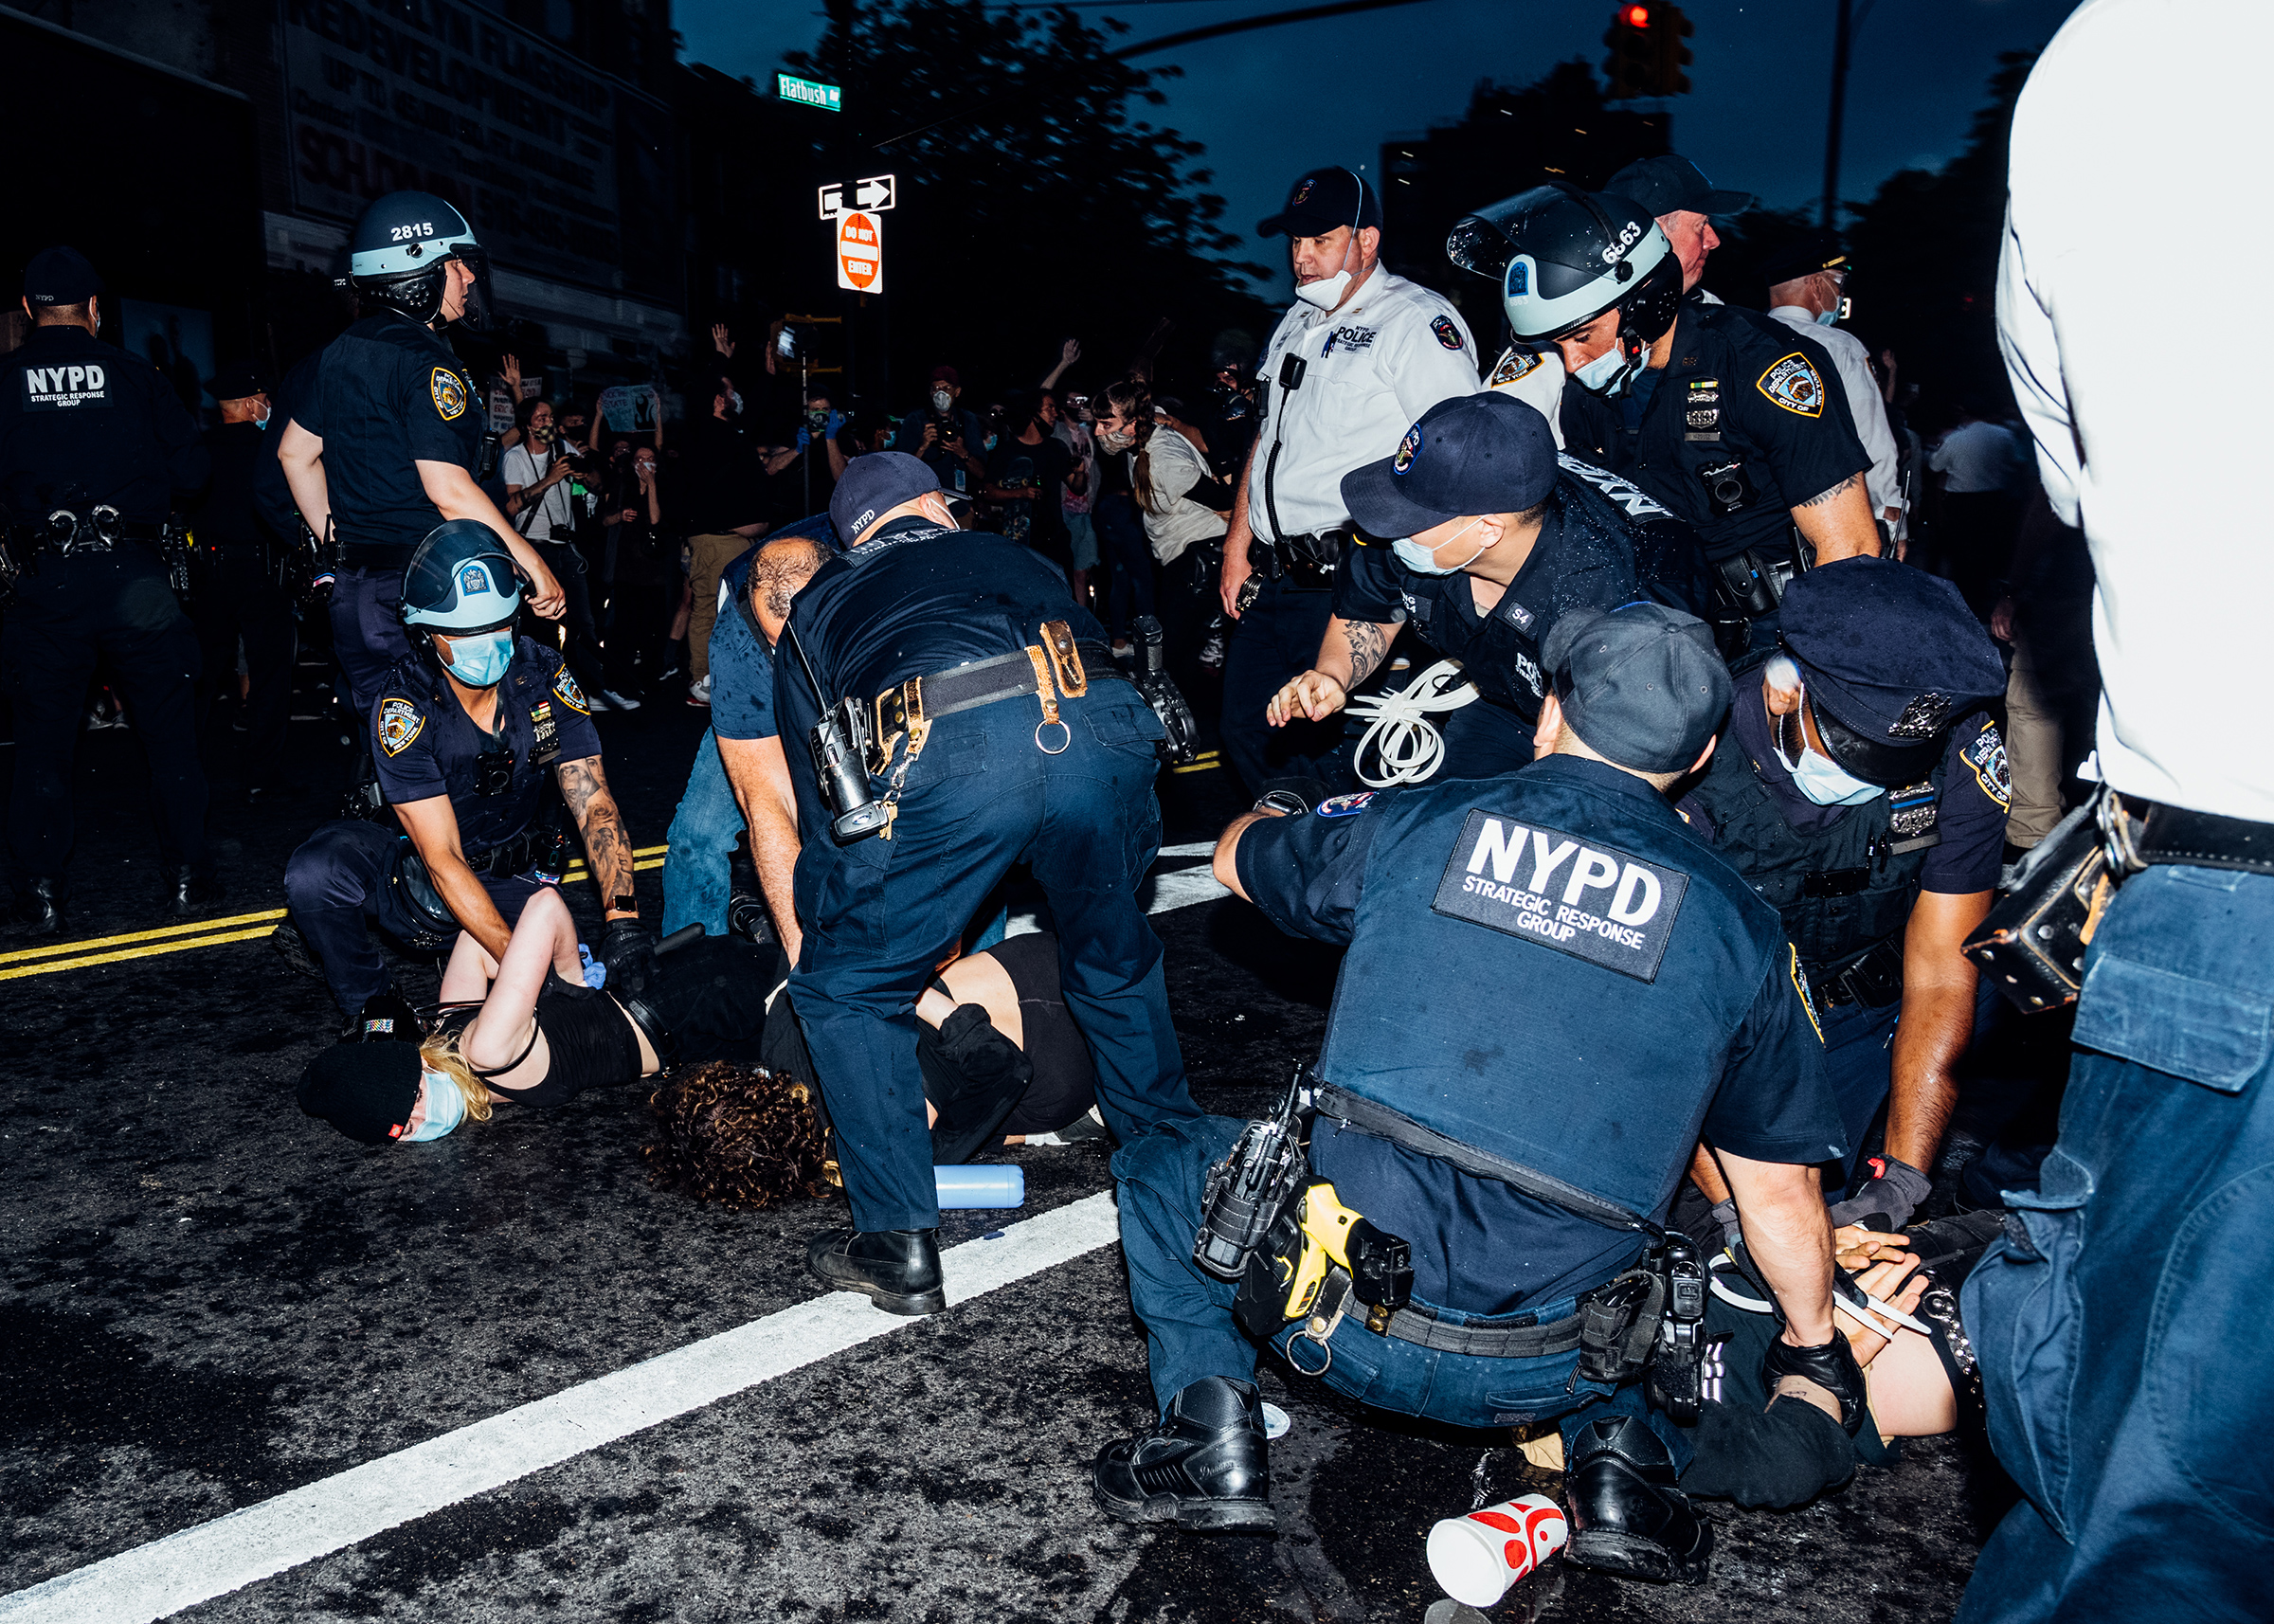 Demonstrators are detained during a protest near Brooklyn's Barclays Center on May 29.